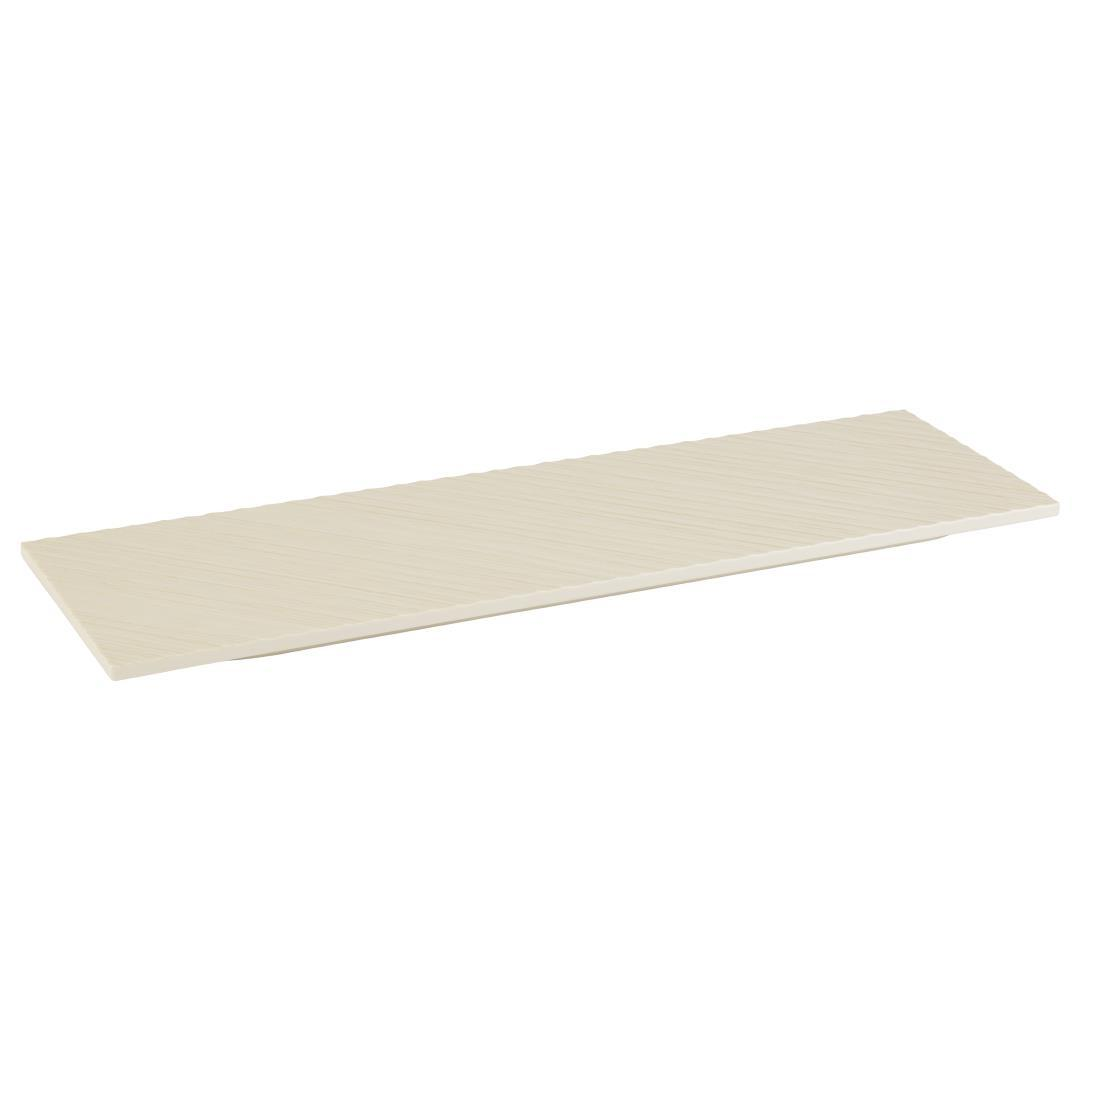 DT747 - APS+ Tiles Tray Cream GN1/2 - Each - DT747